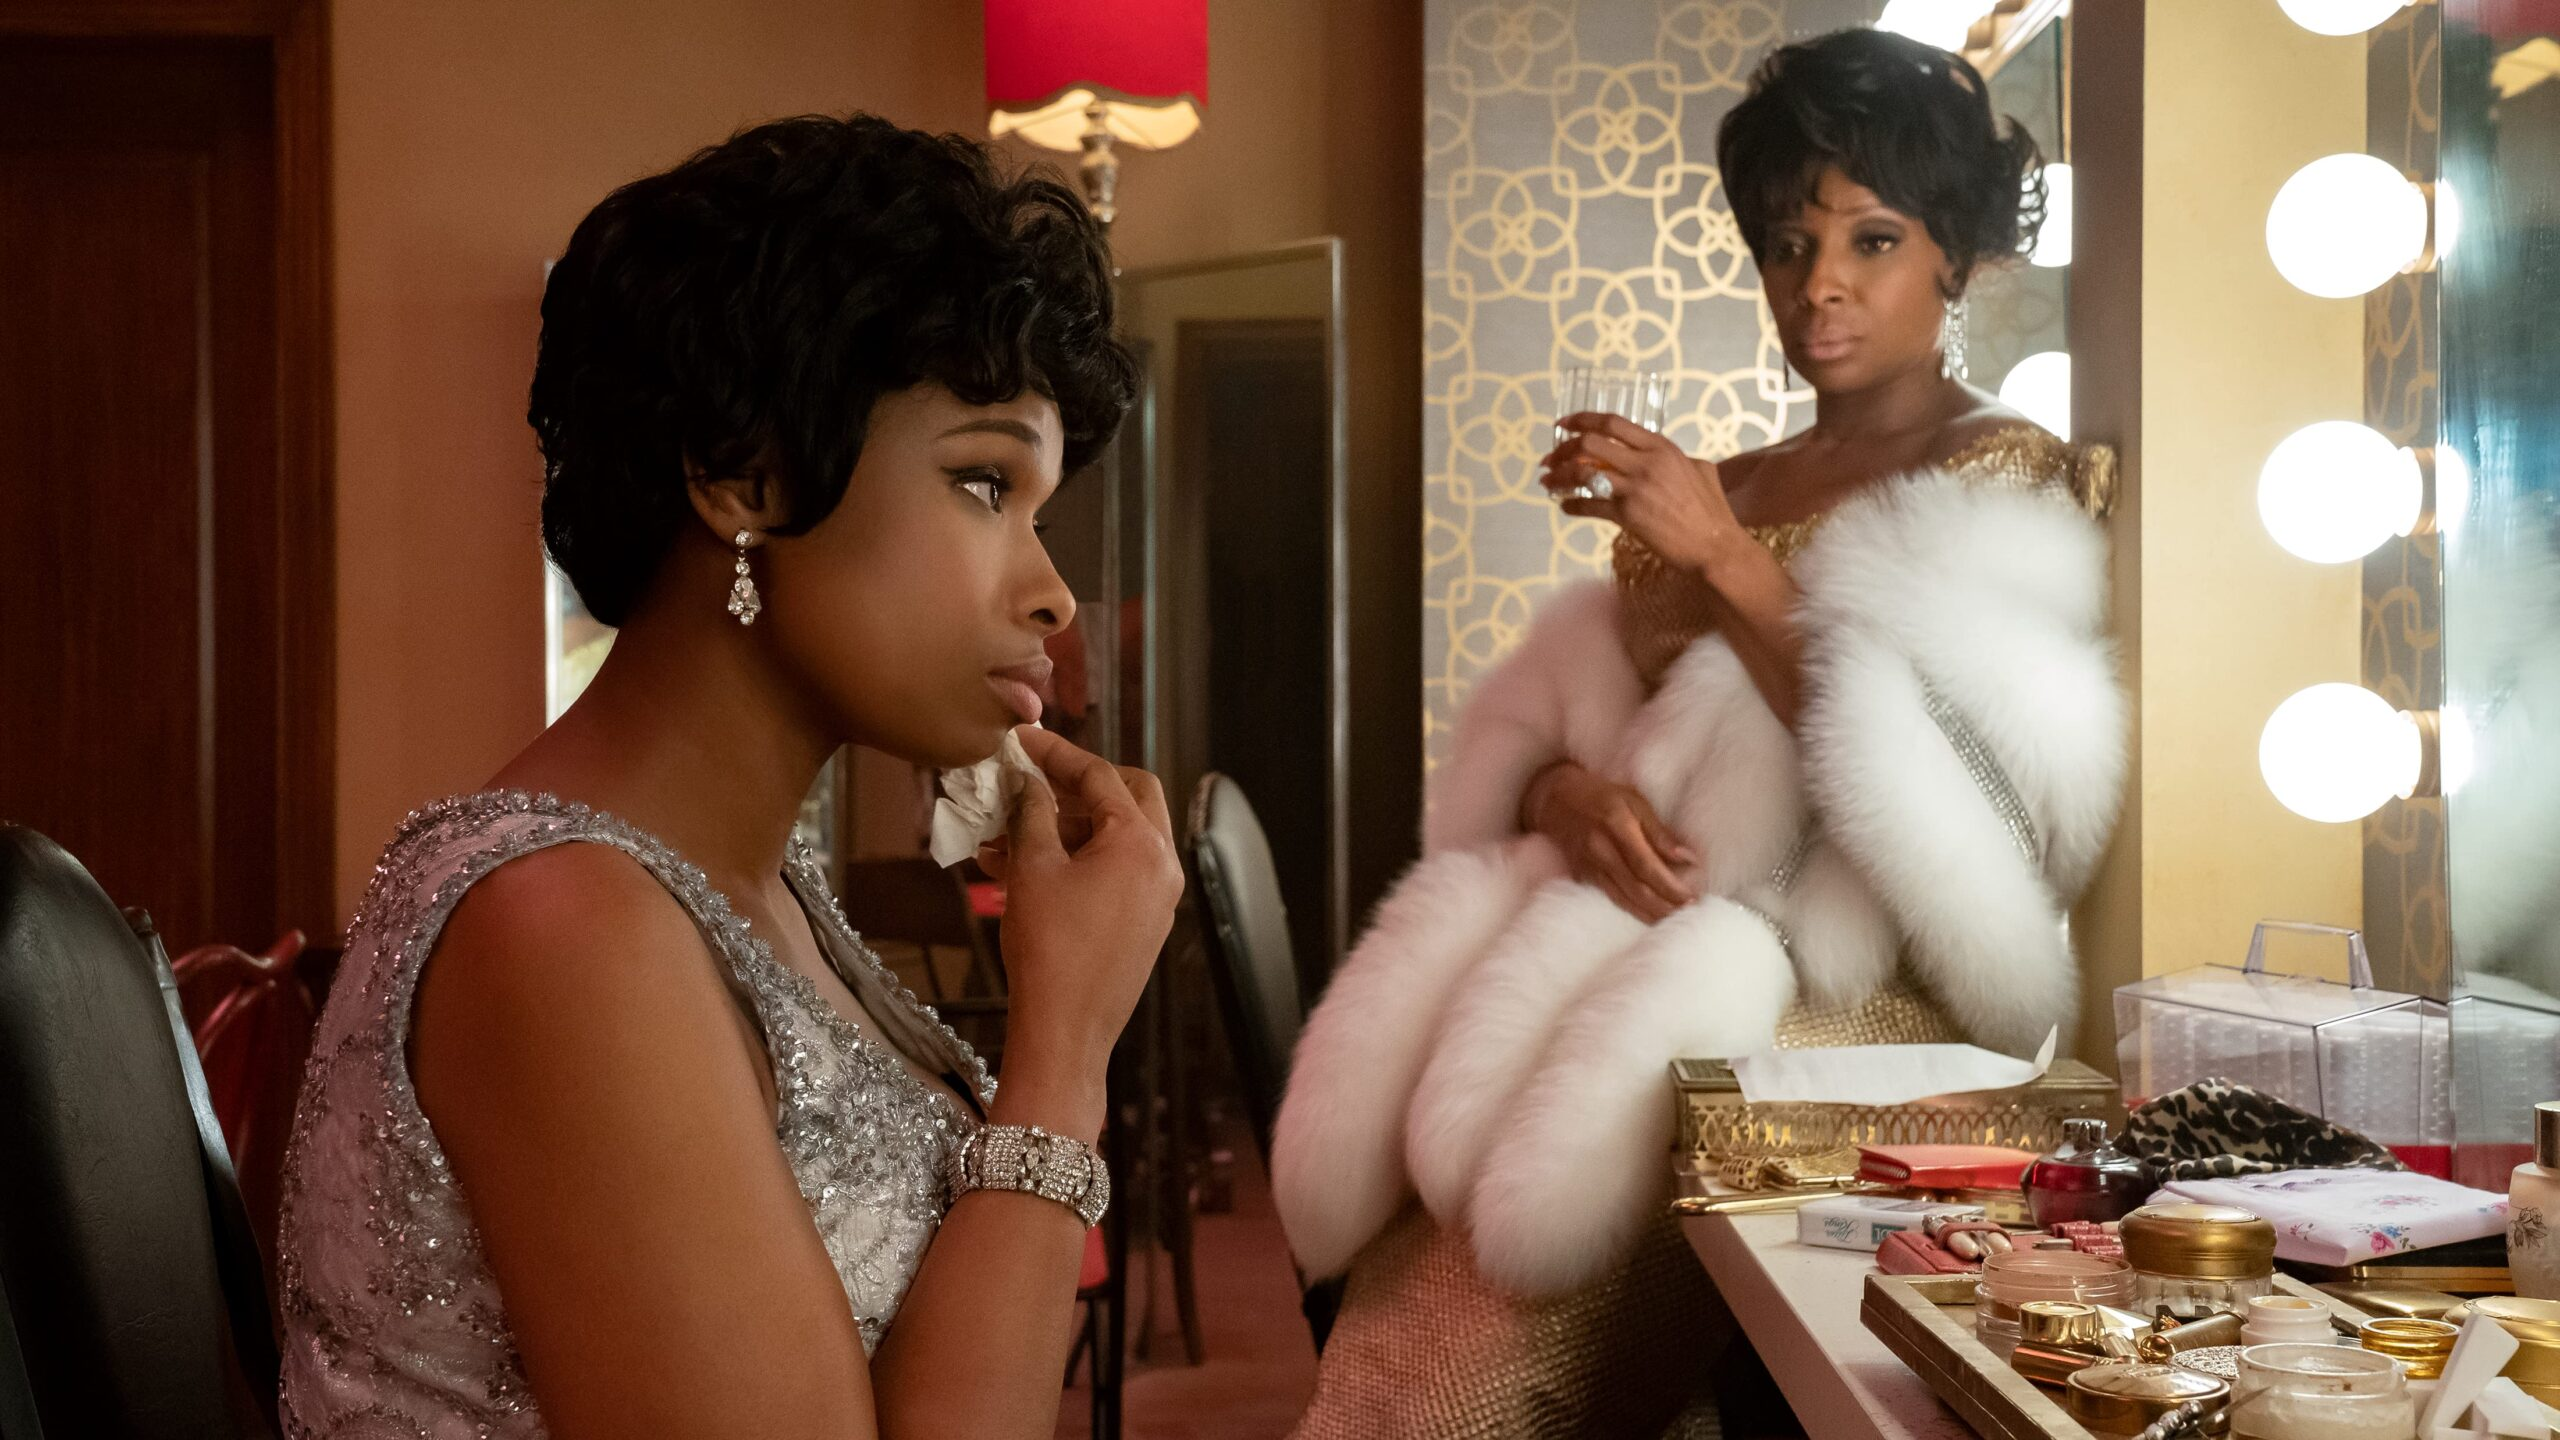 Jennifer Hudson and Mary J. Blige giving us Black Girl Magic in the film, Aretha Franklin RESPECT.  Picture credit from IMDb